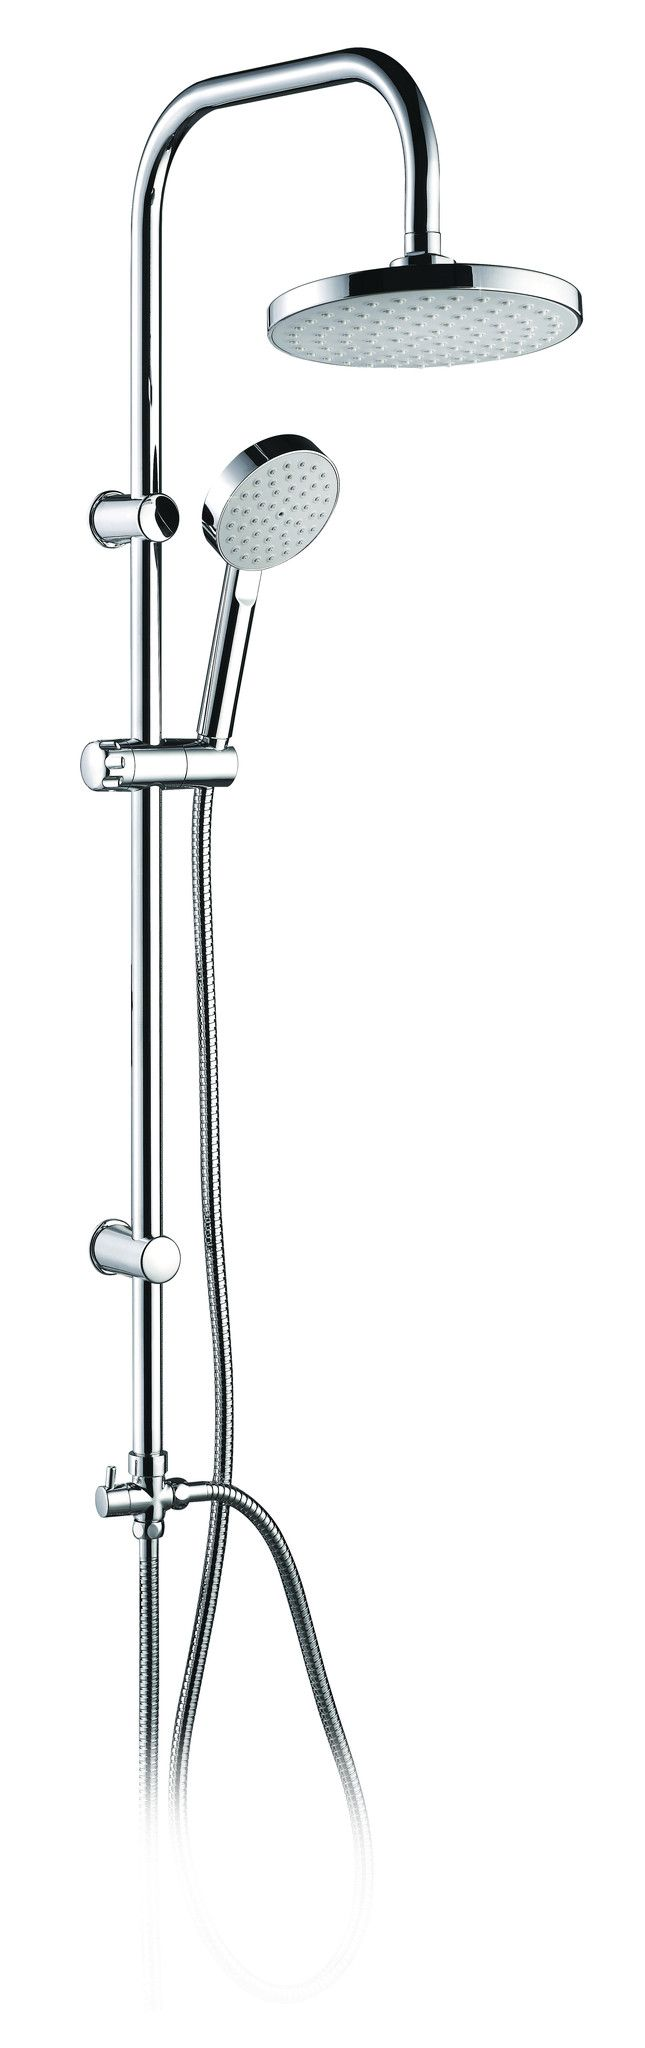 Bathroom showers head - Me Lago Shower System Column W Shower Head Hand Held Shower Polished Chrome